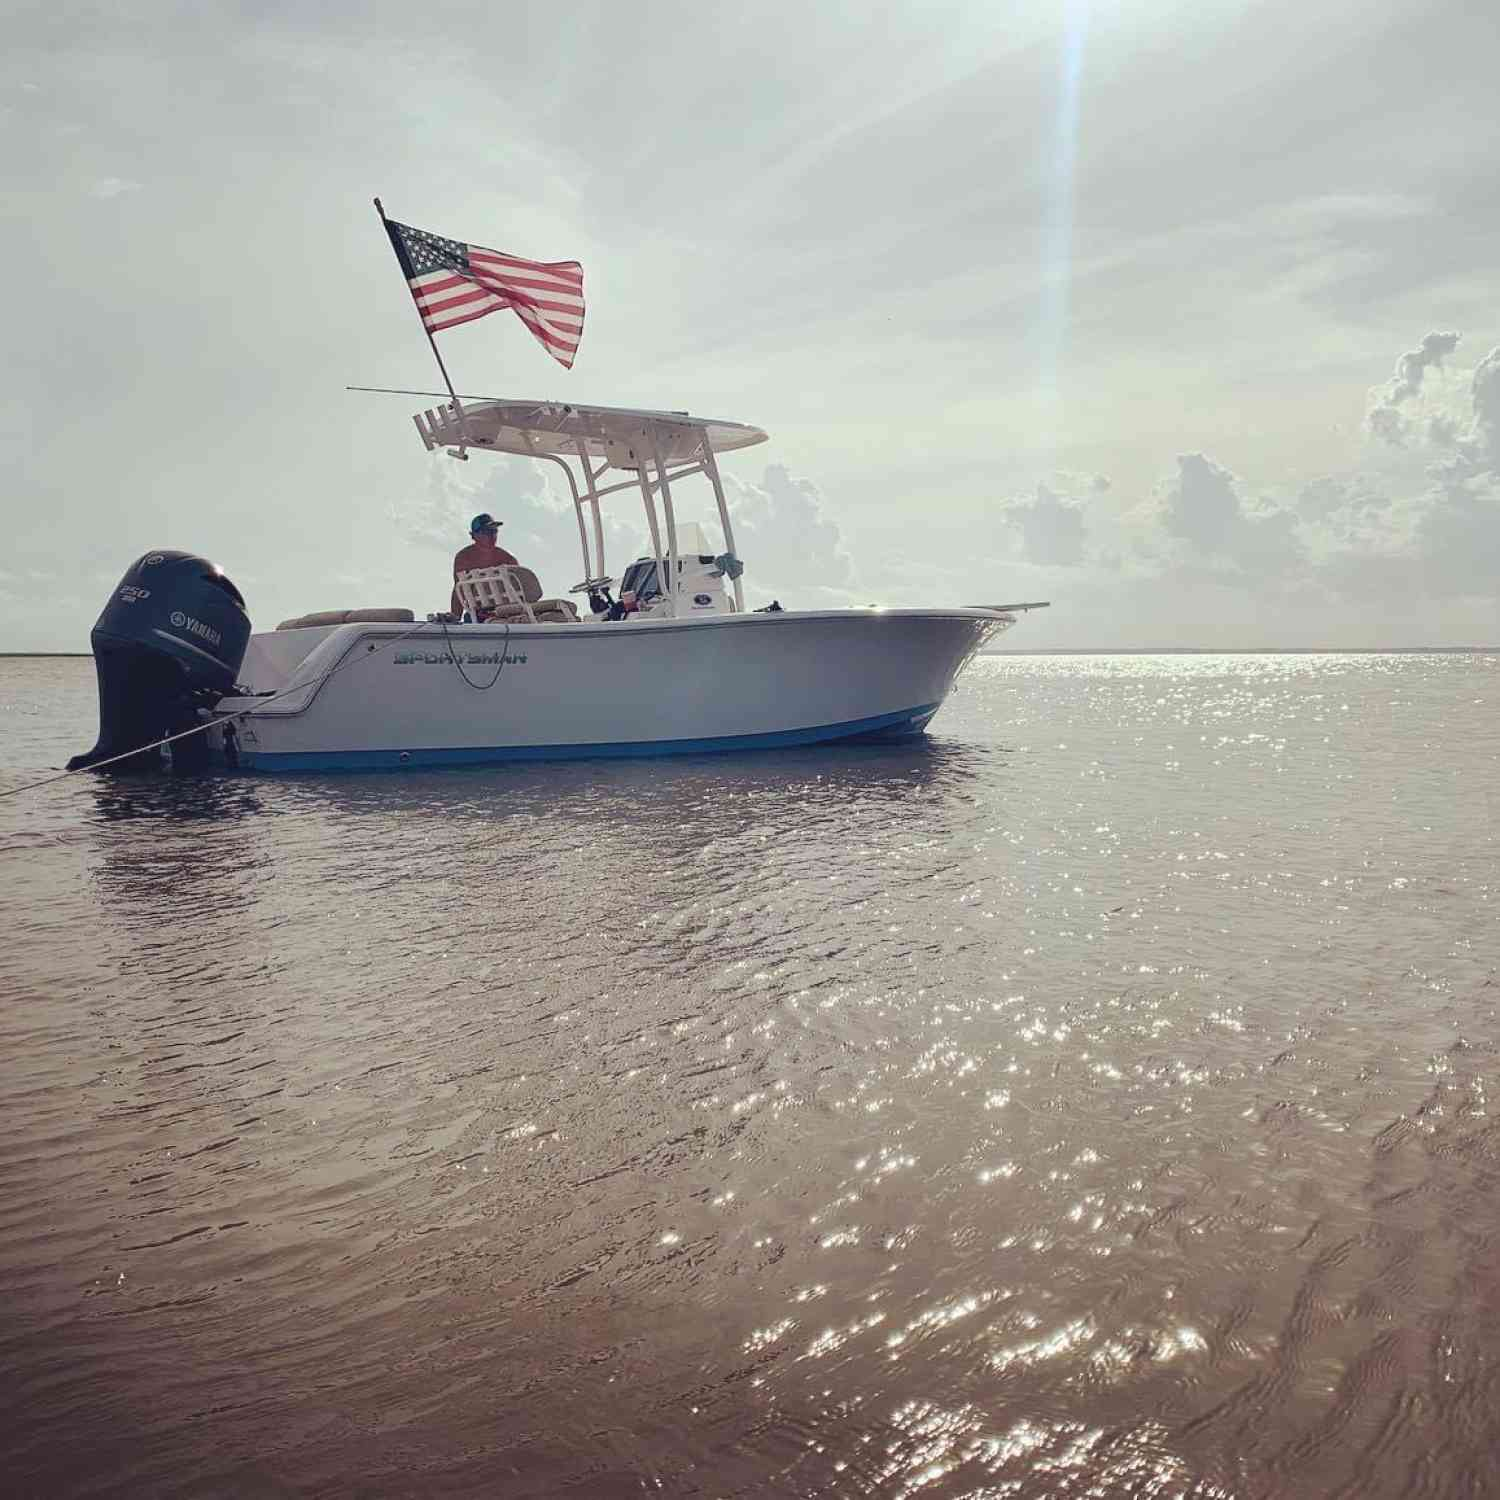 Title: Sandbar Sitting and Sippin - On board their Sportsman Heritage 231 Center Console - Location: Saint Catherine's Island. Participating in the Photo Contest #SportsmanAugust2020